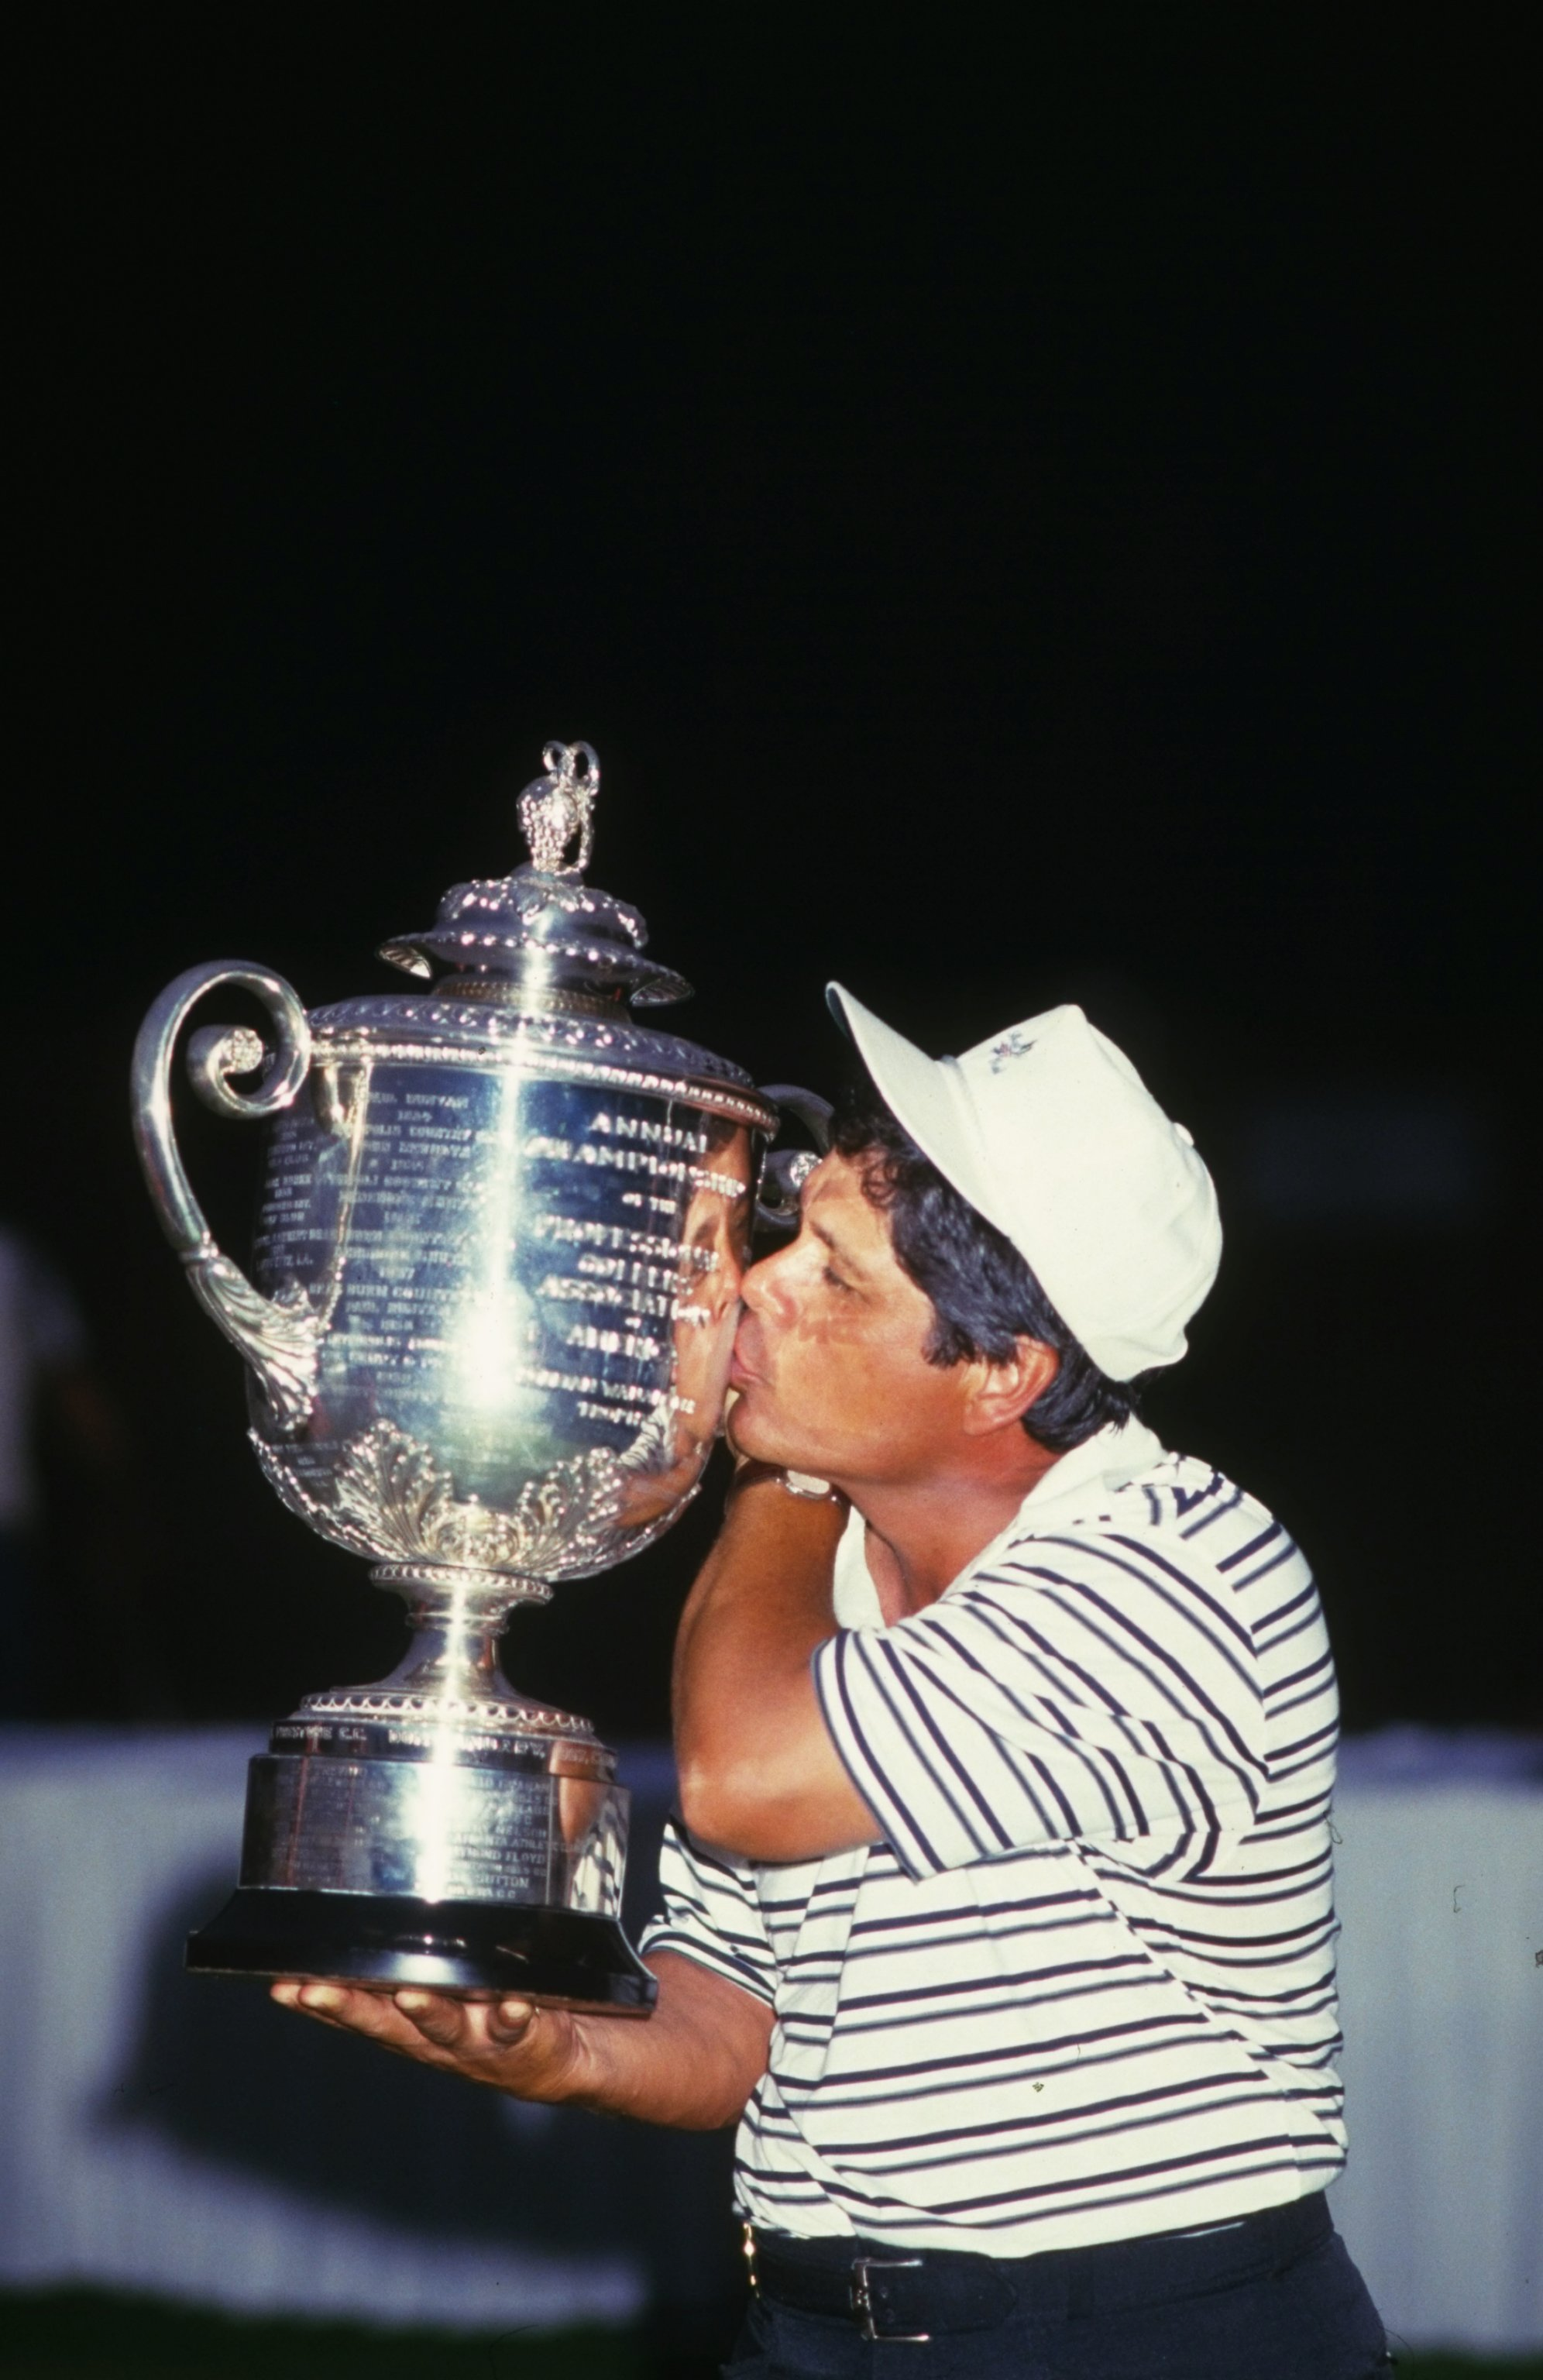 1984:  Lee Trevino of the USA kisses the trophy after the USPGA Championships at the Shoal Creek Country Club in Birmingham, Alabama, USA. Trevino won the event with a score of 273. \ Mandatory Credit: David  Cannon/Allsport